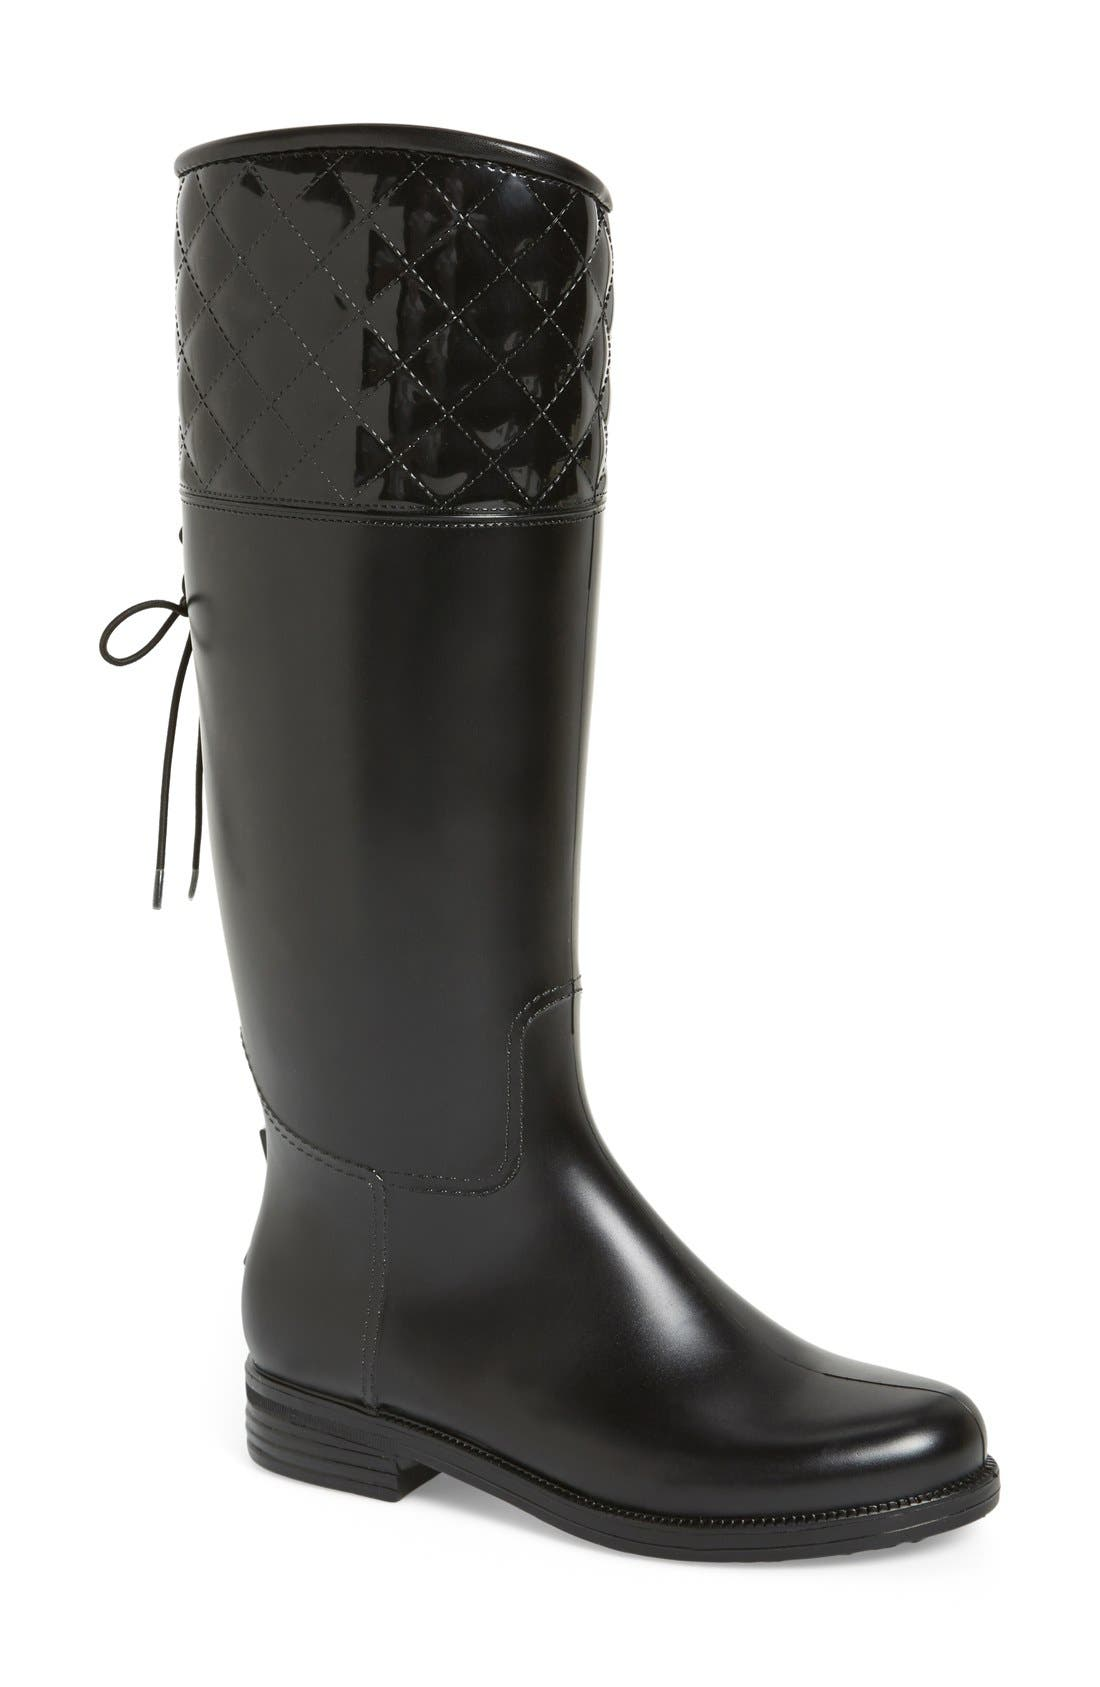 Main Image - däv 'Victoria' Waterproof Tall Rain Boot (Women)